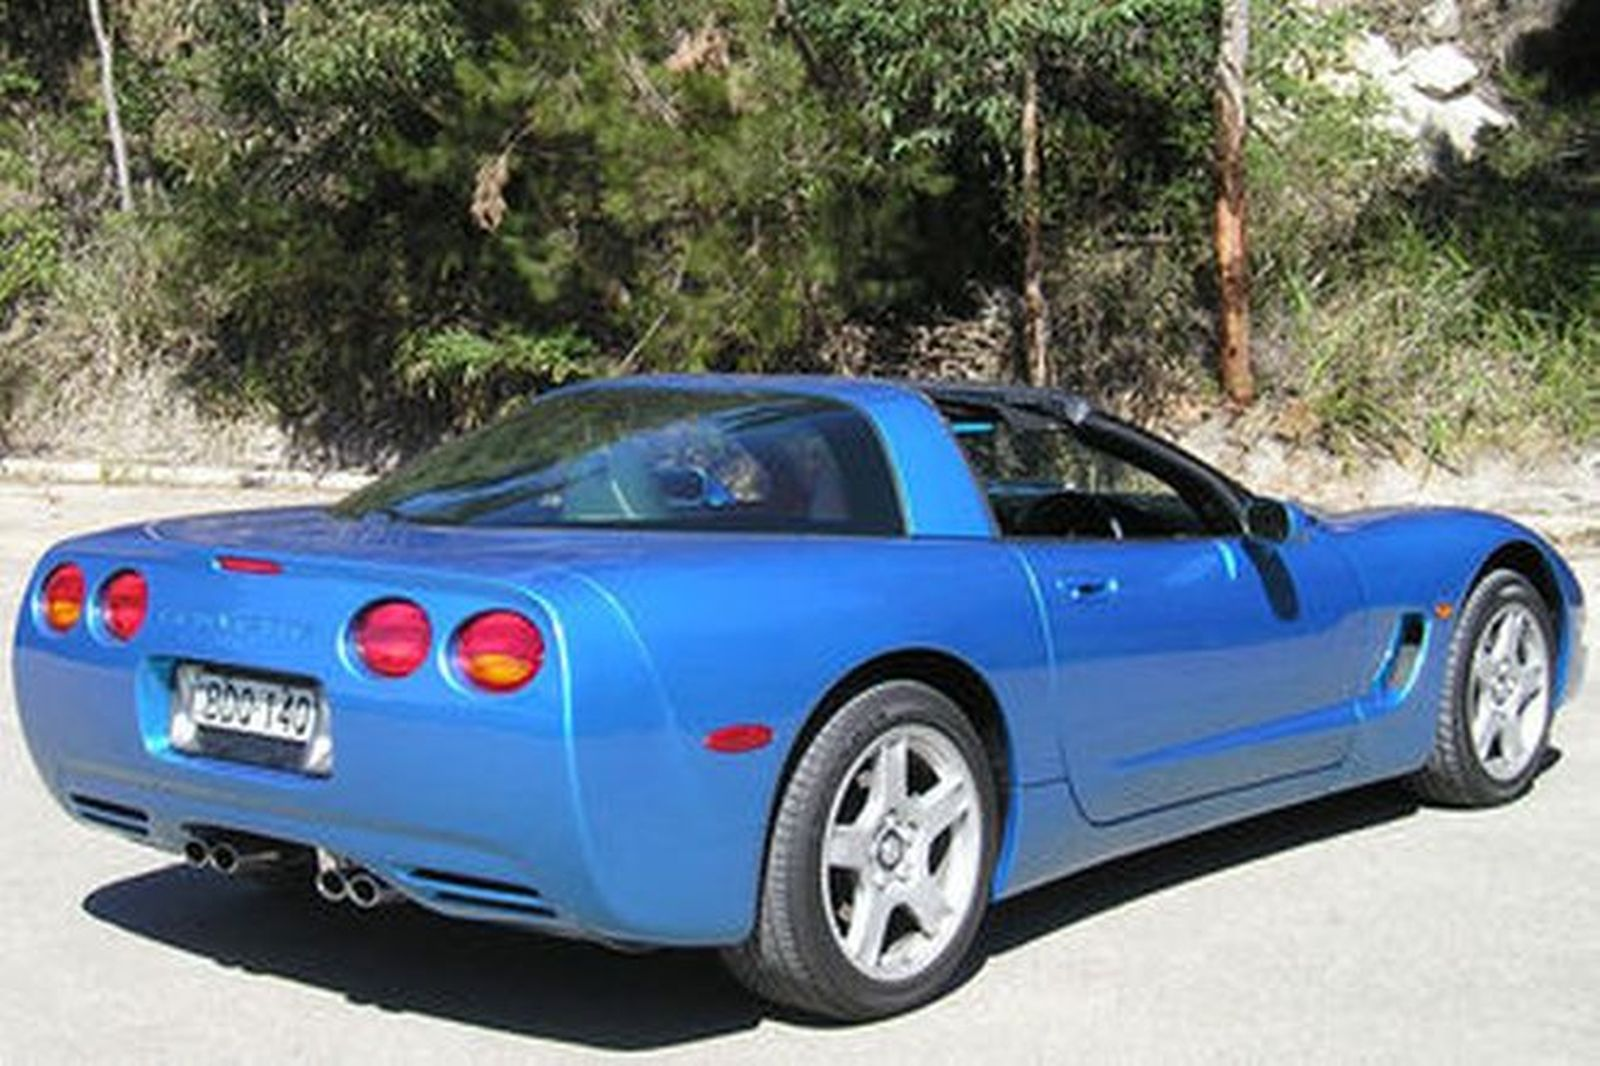 chevrolet corvette c5 coupe rhd auctions lot 9 shannons. Black Bedroom Furniture Sets. Home Design Ideas